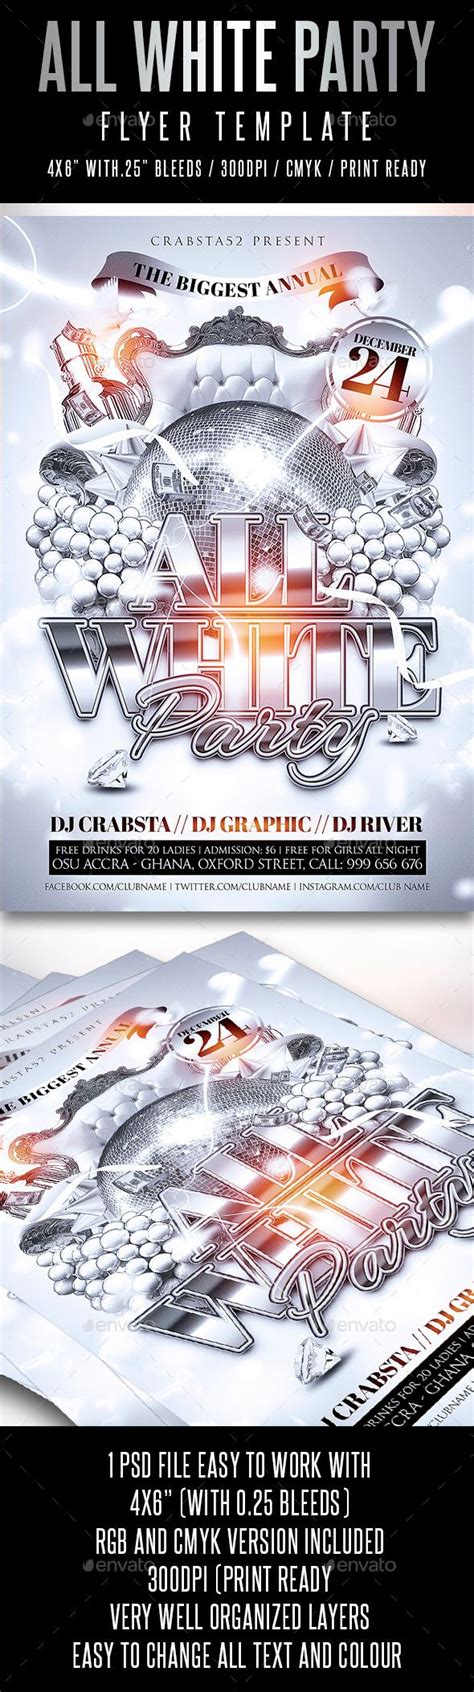 white party flyer template flyer template flyers